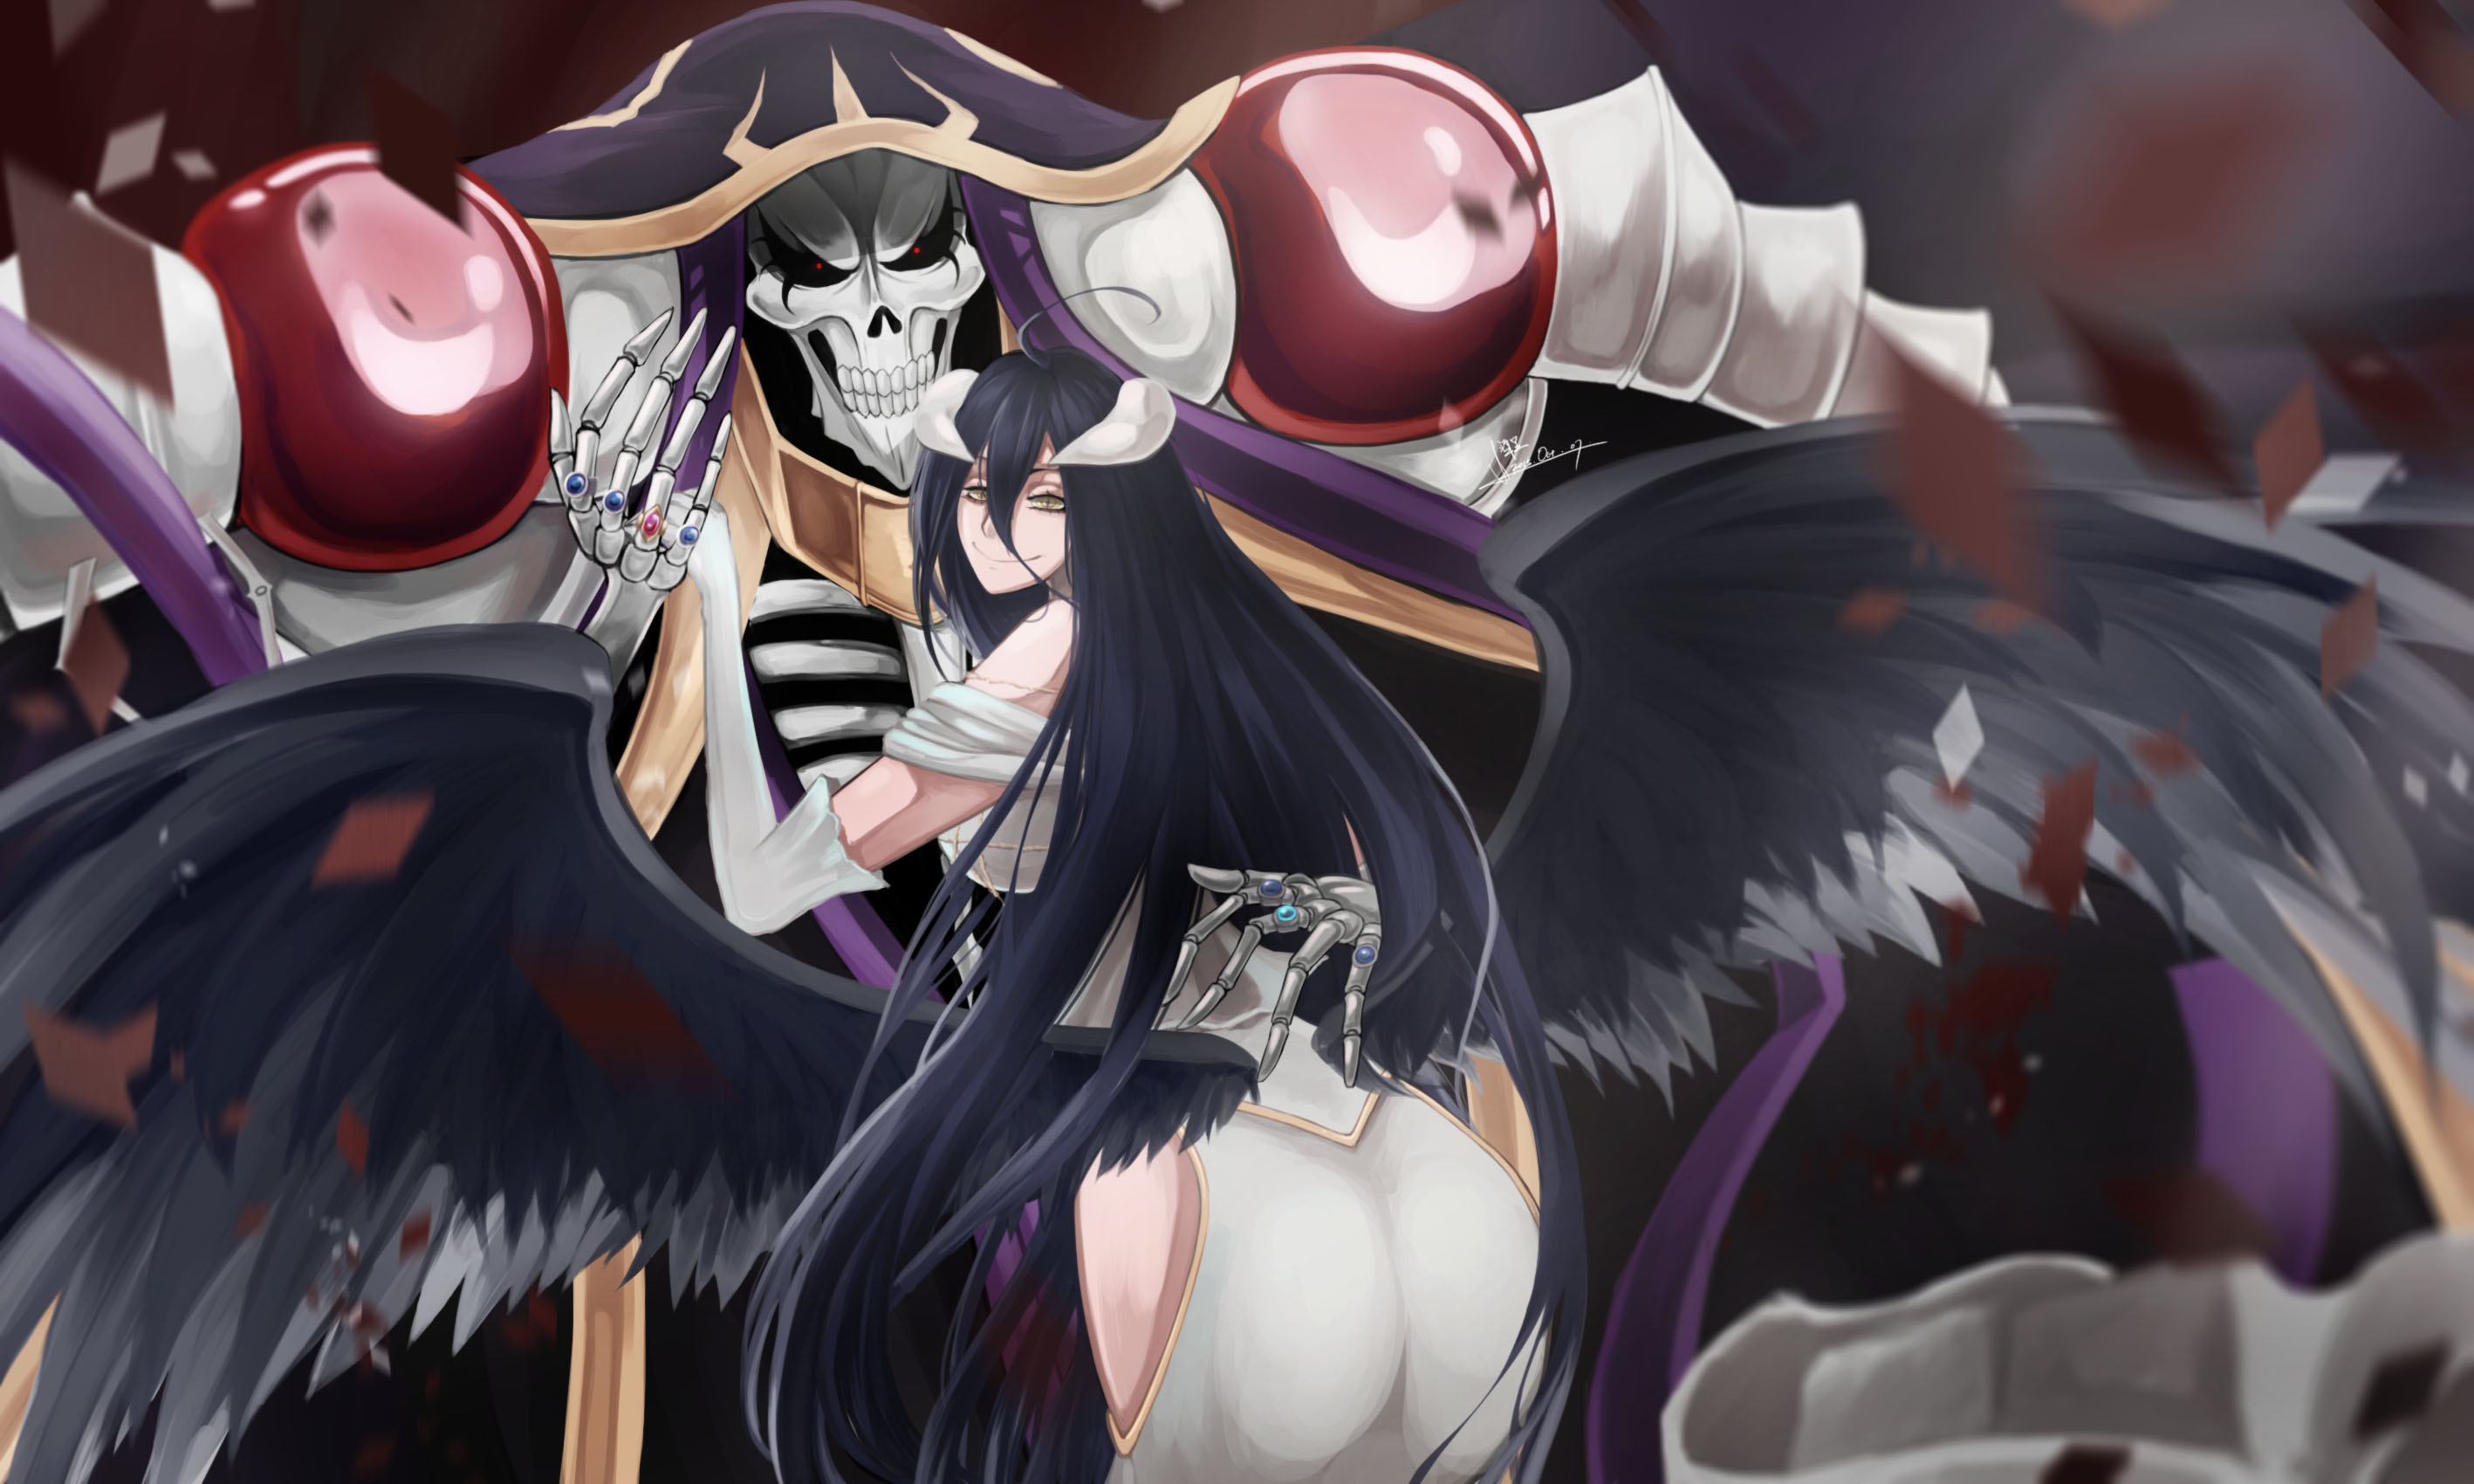 49 Albedo Overlord Wallpaper On Wallpapersafari